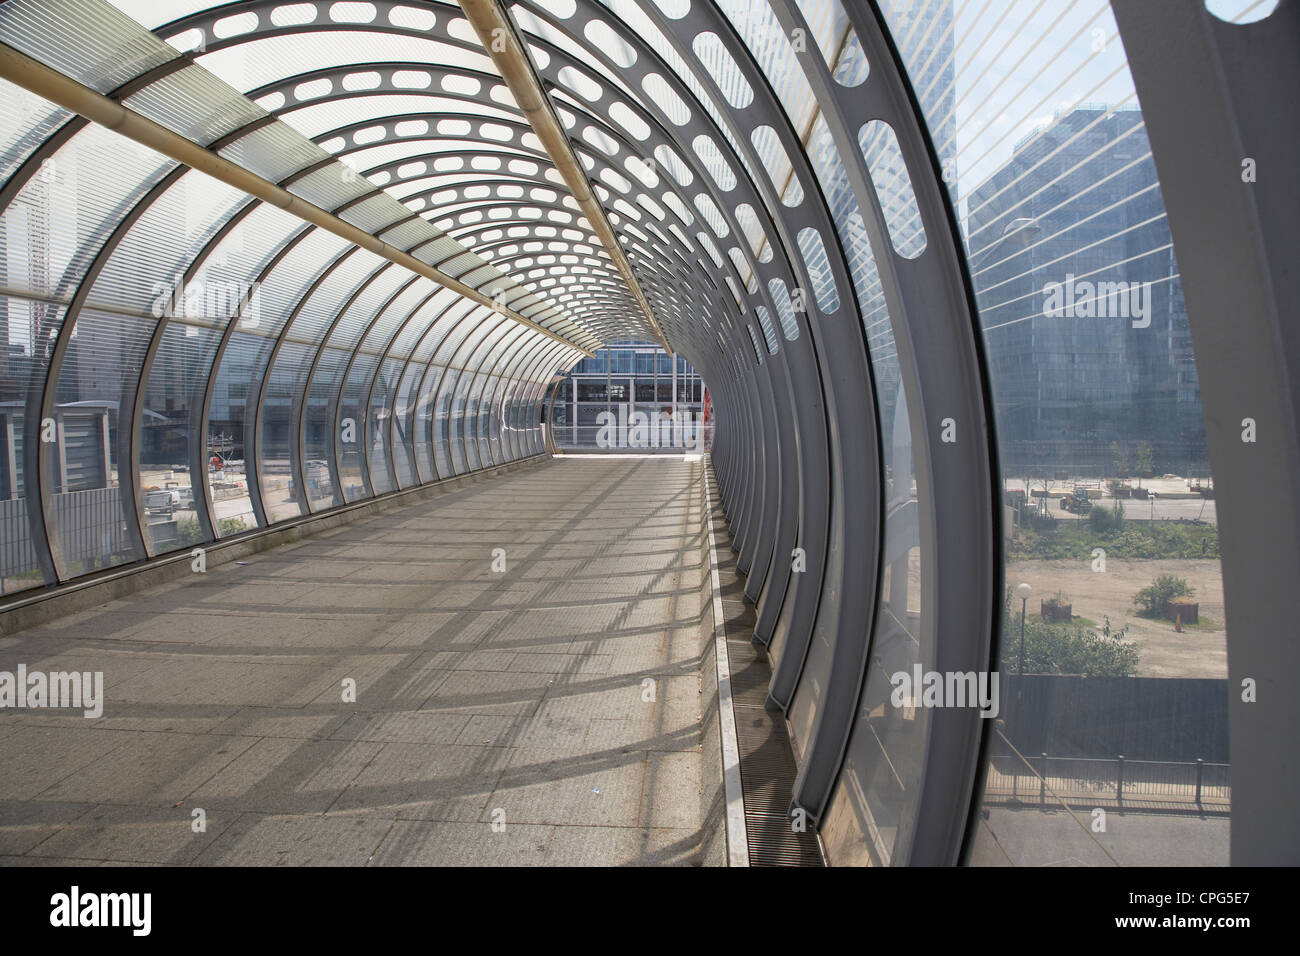 covered foot bridge that connects poplar station to canary wharf - Stock Image